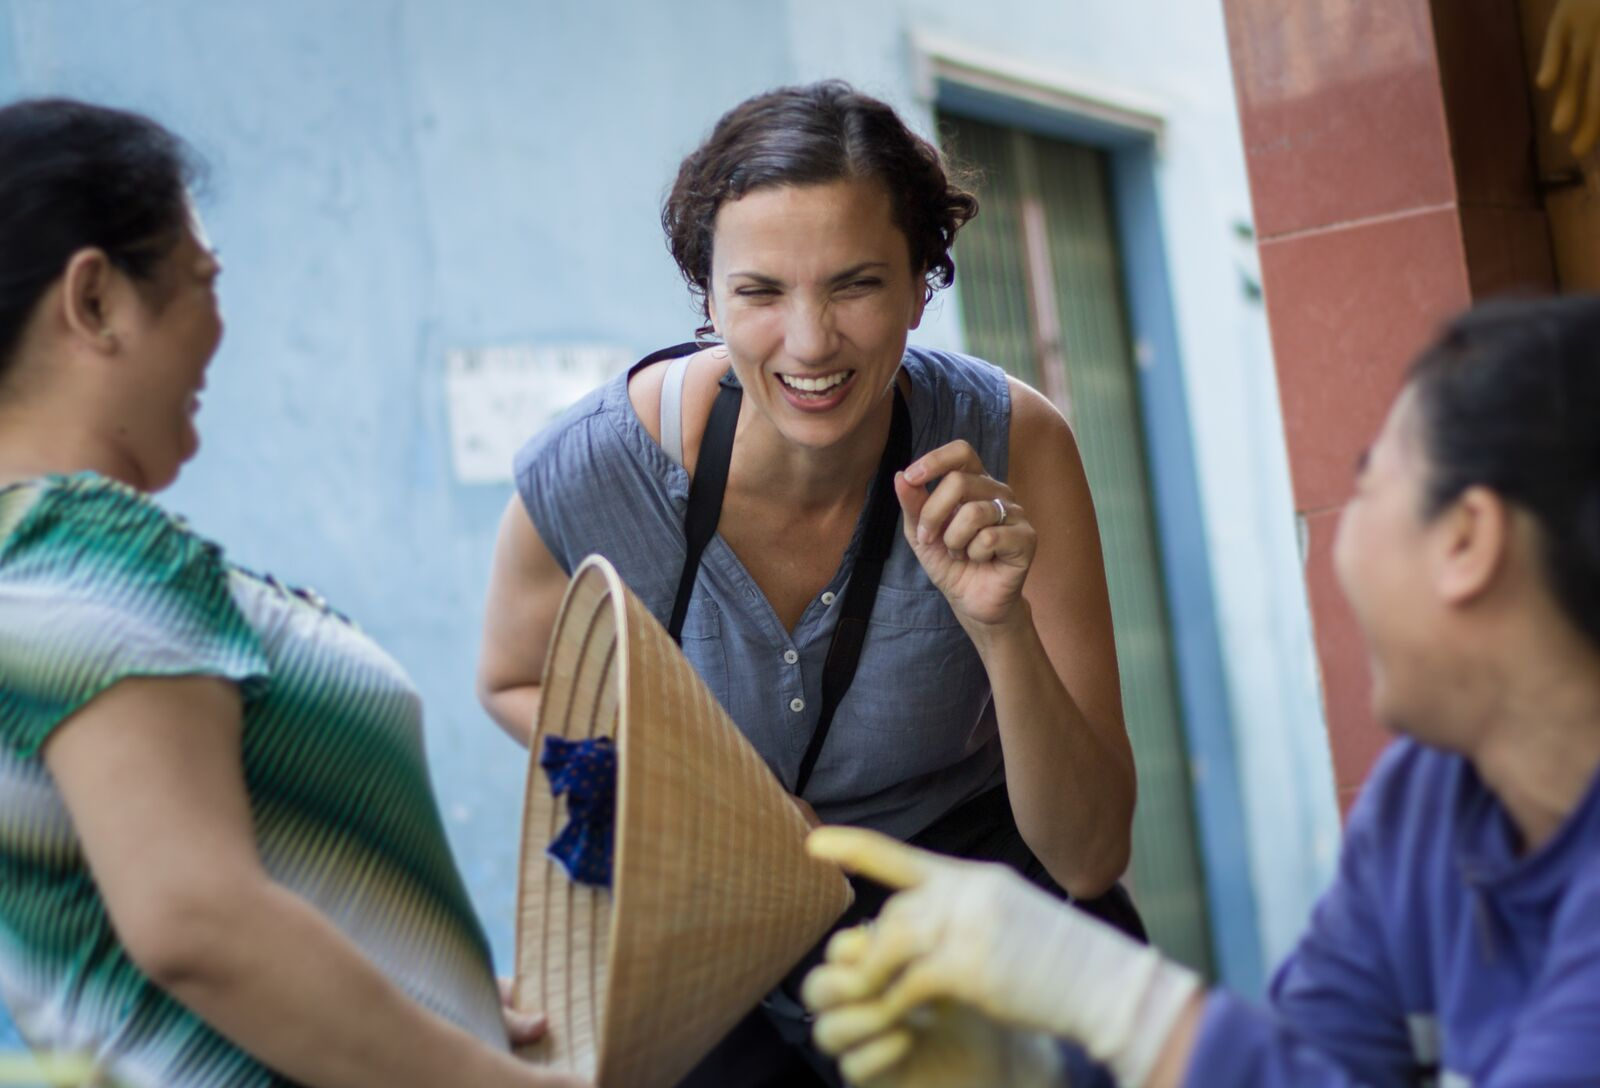 Tanya Olander laughing with two local vendors in a photo taken by photographer Maria Graven while the two were shooting in District 3 – Photo provided by Tanya Olander